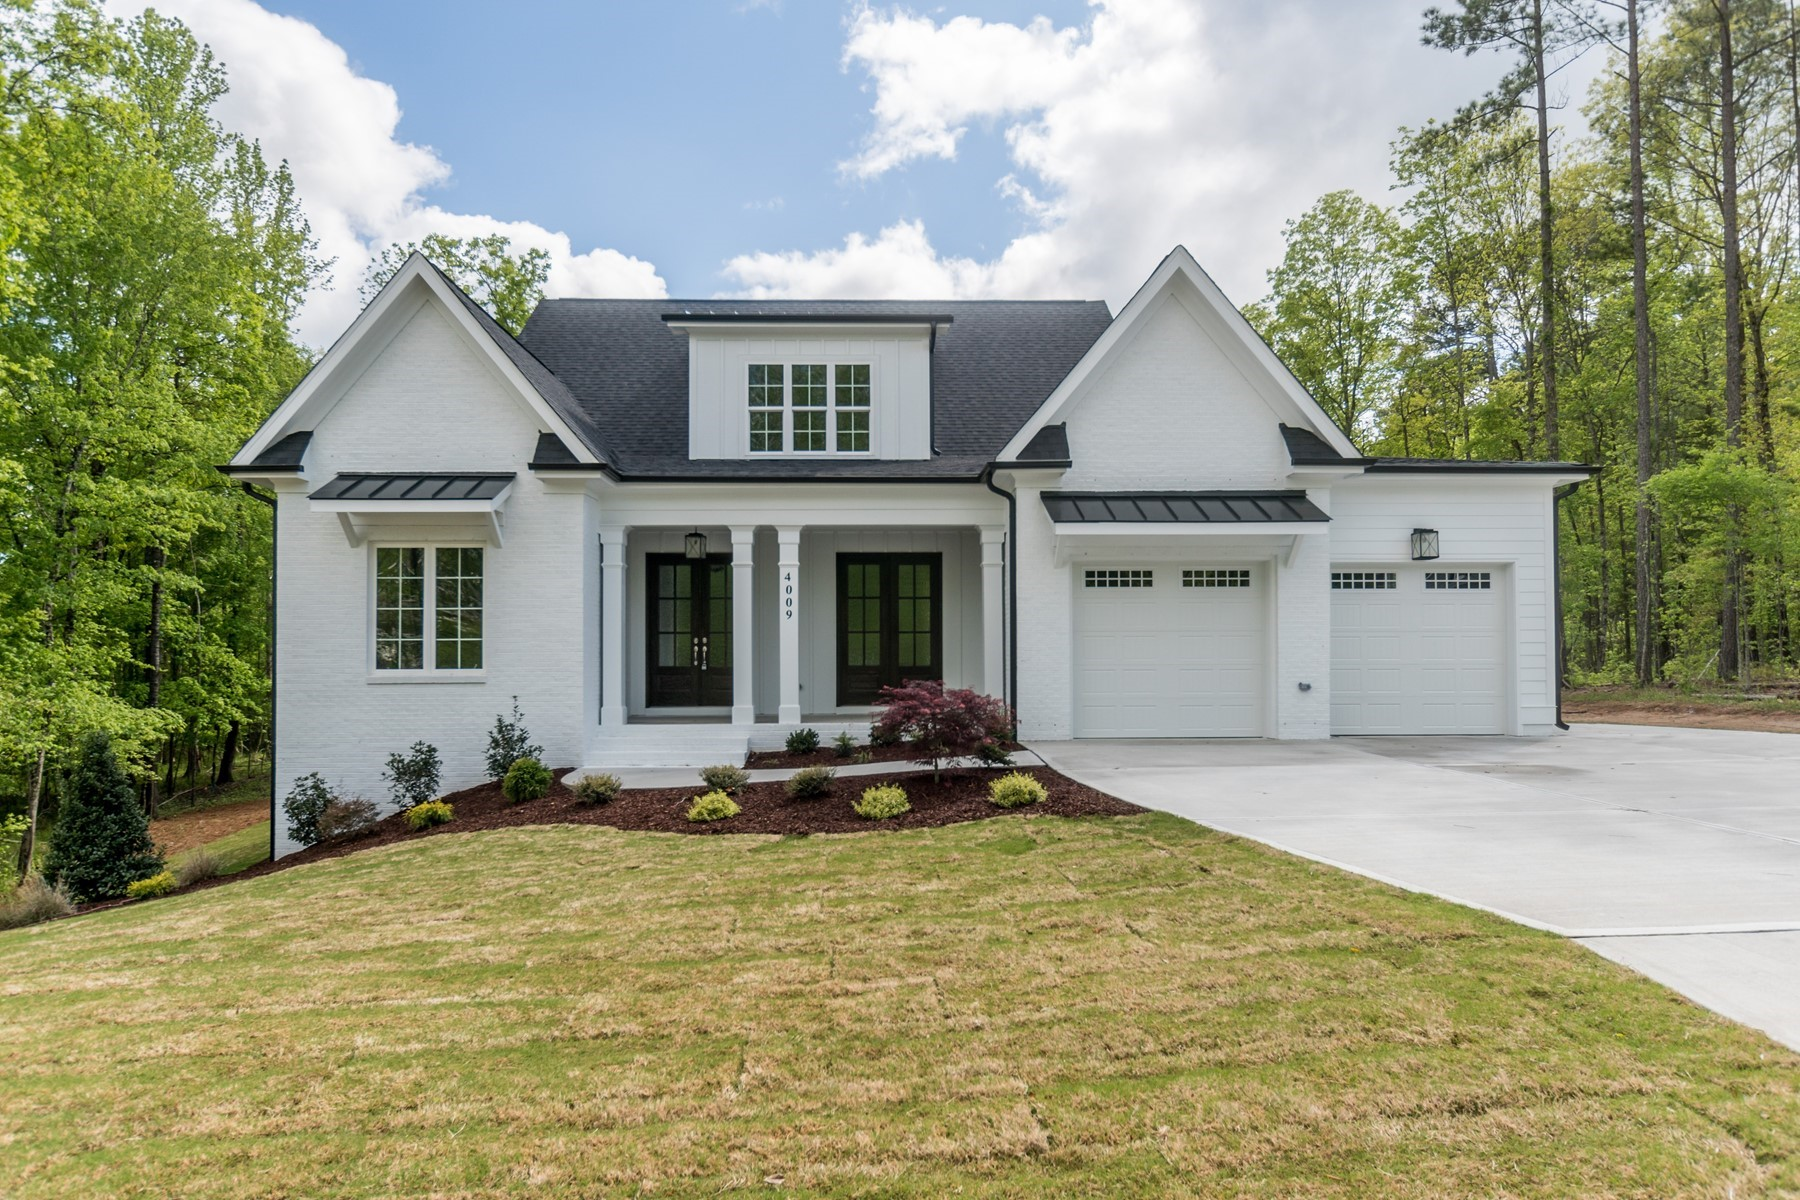 4009 Wilton Woods Place (Lot 26) -- SOLD